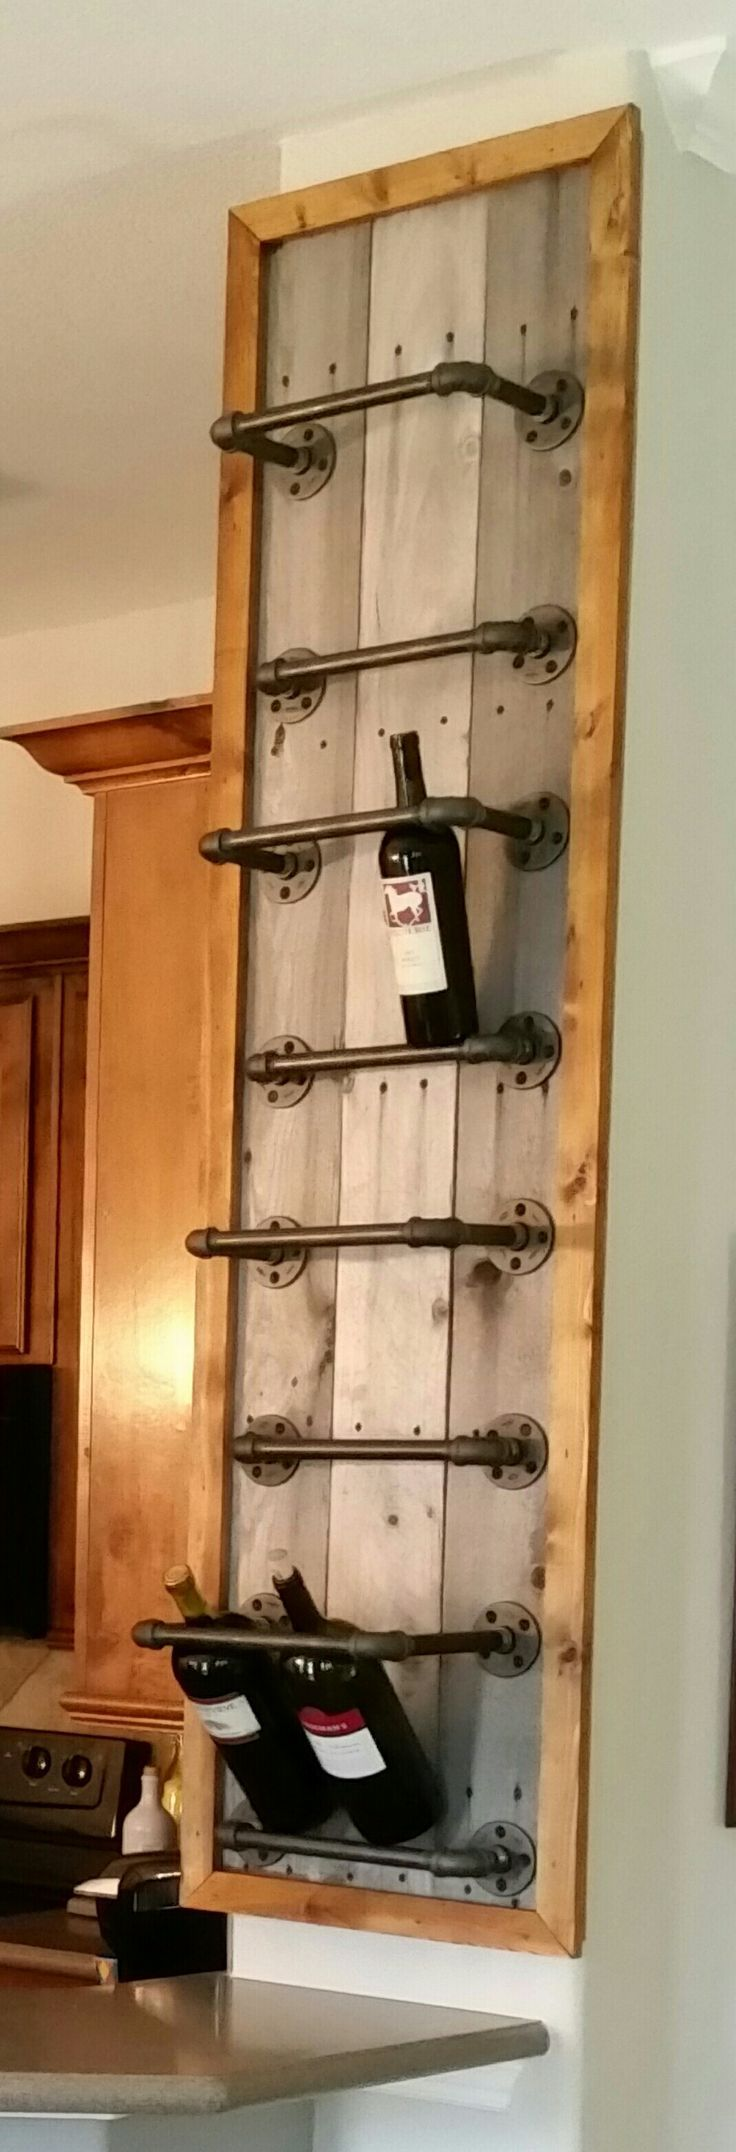 Design Building A Wine Rack best 25 diy wine racks ideas on pinterest rack inspiration bottle and cheap racks